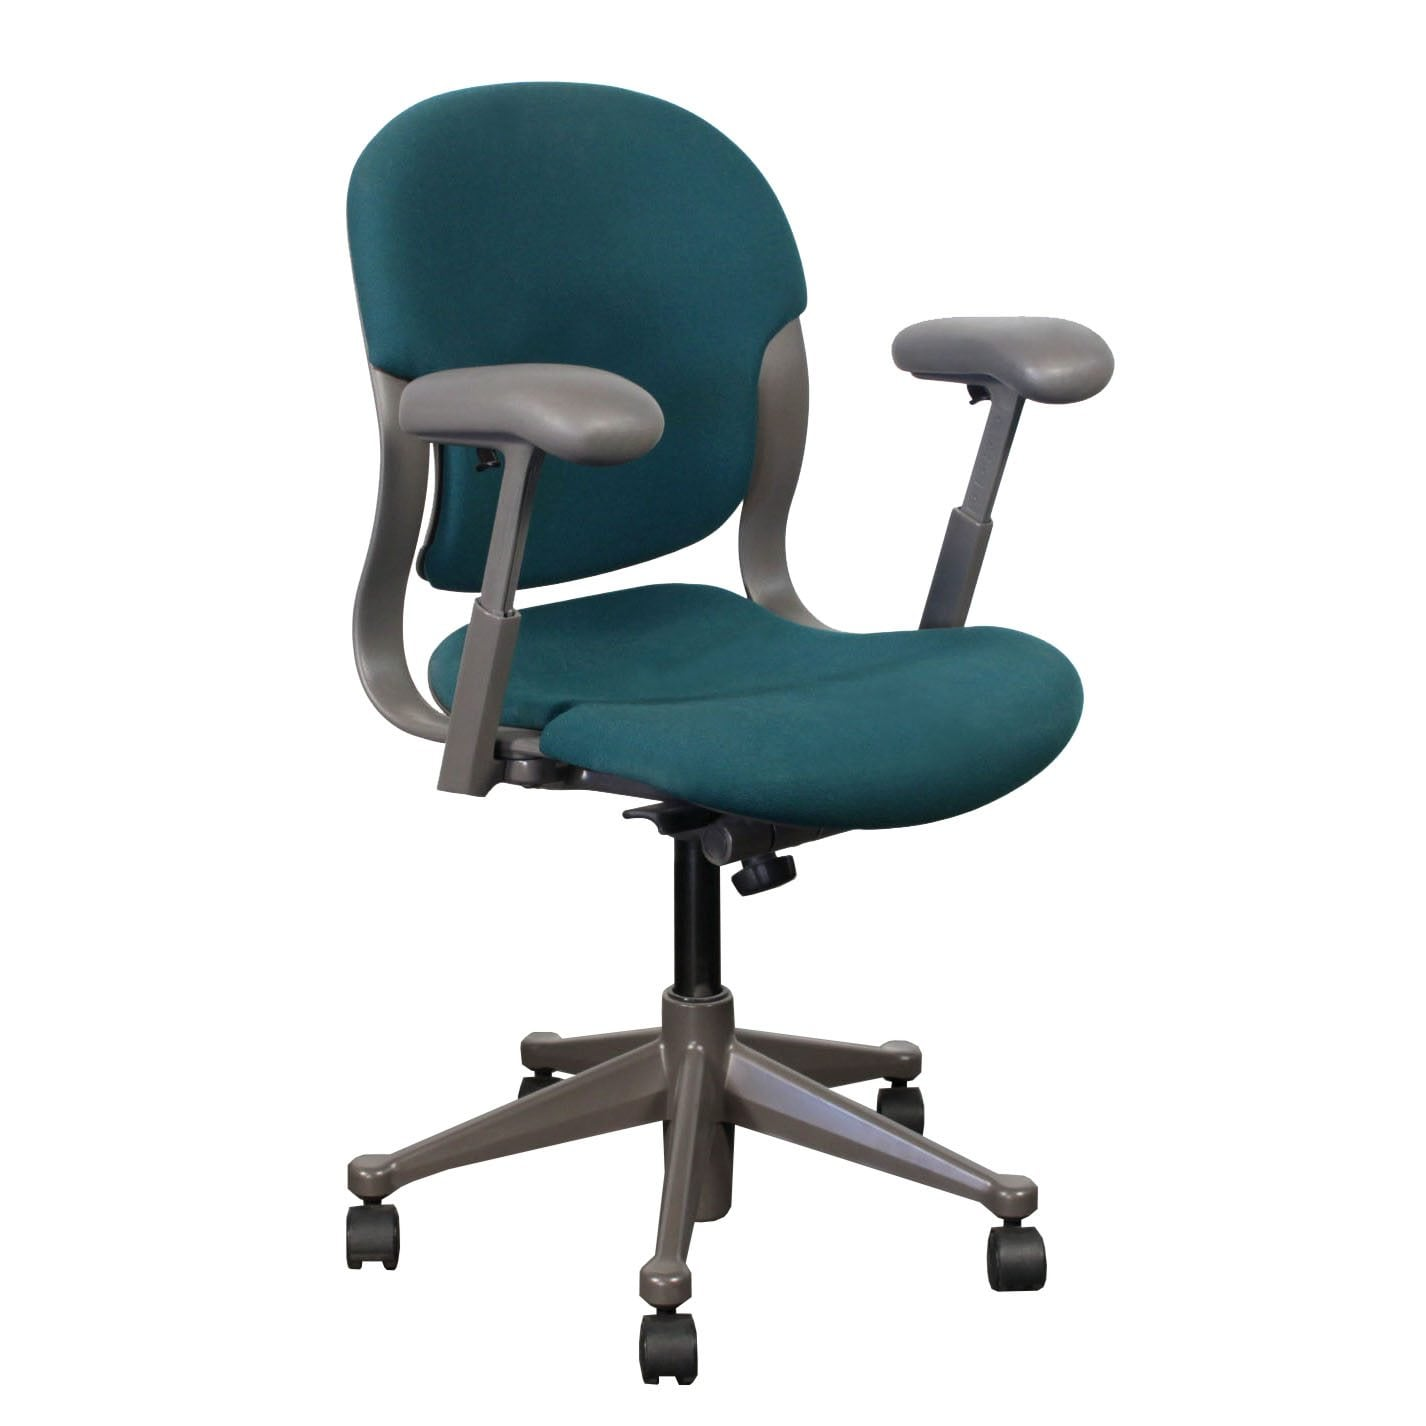 teal computer chair design bar chairs herman miller used equa task national office